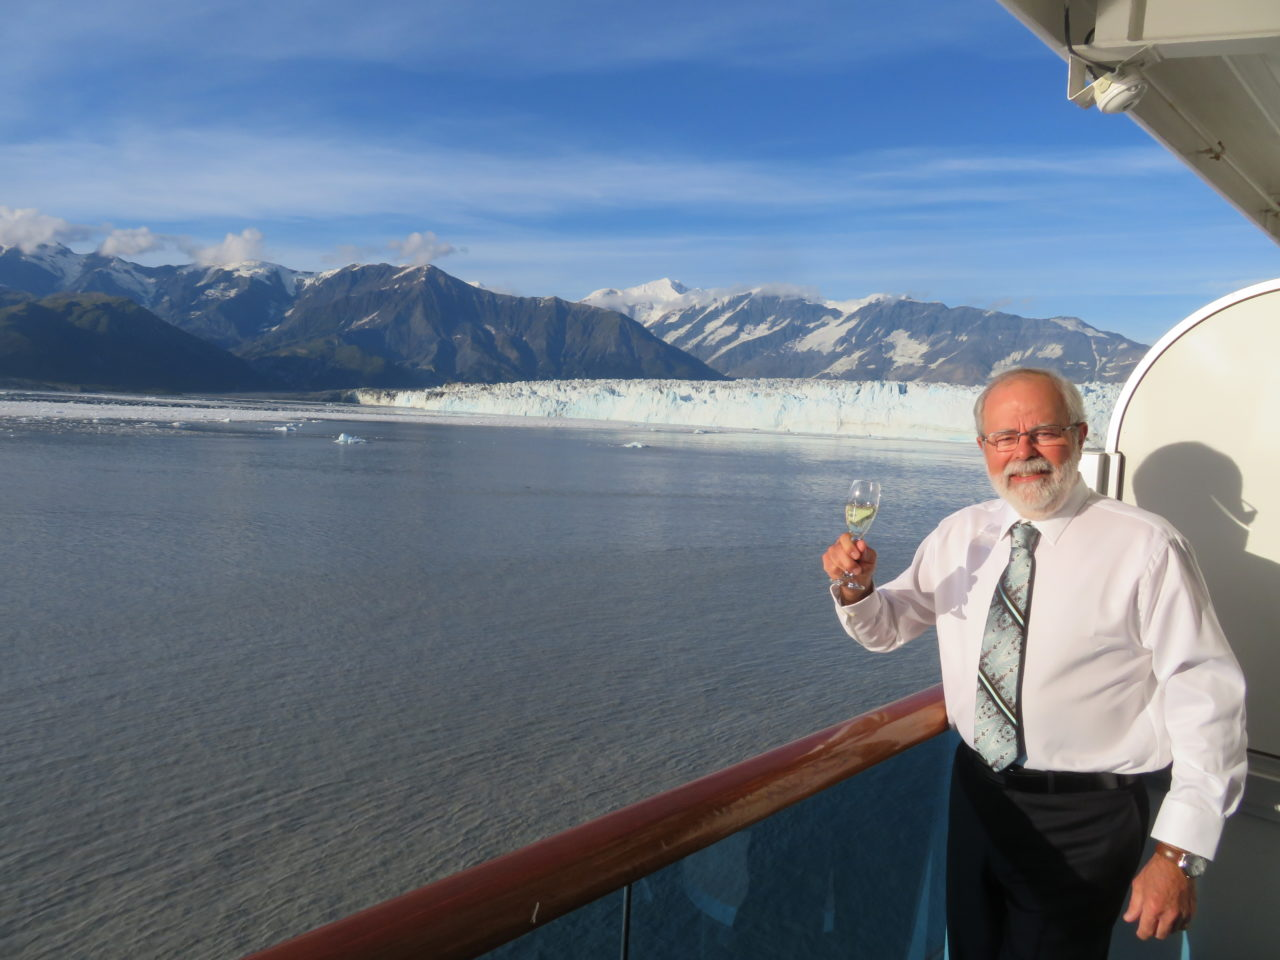 Louis-Simon at Hubbard Glacier